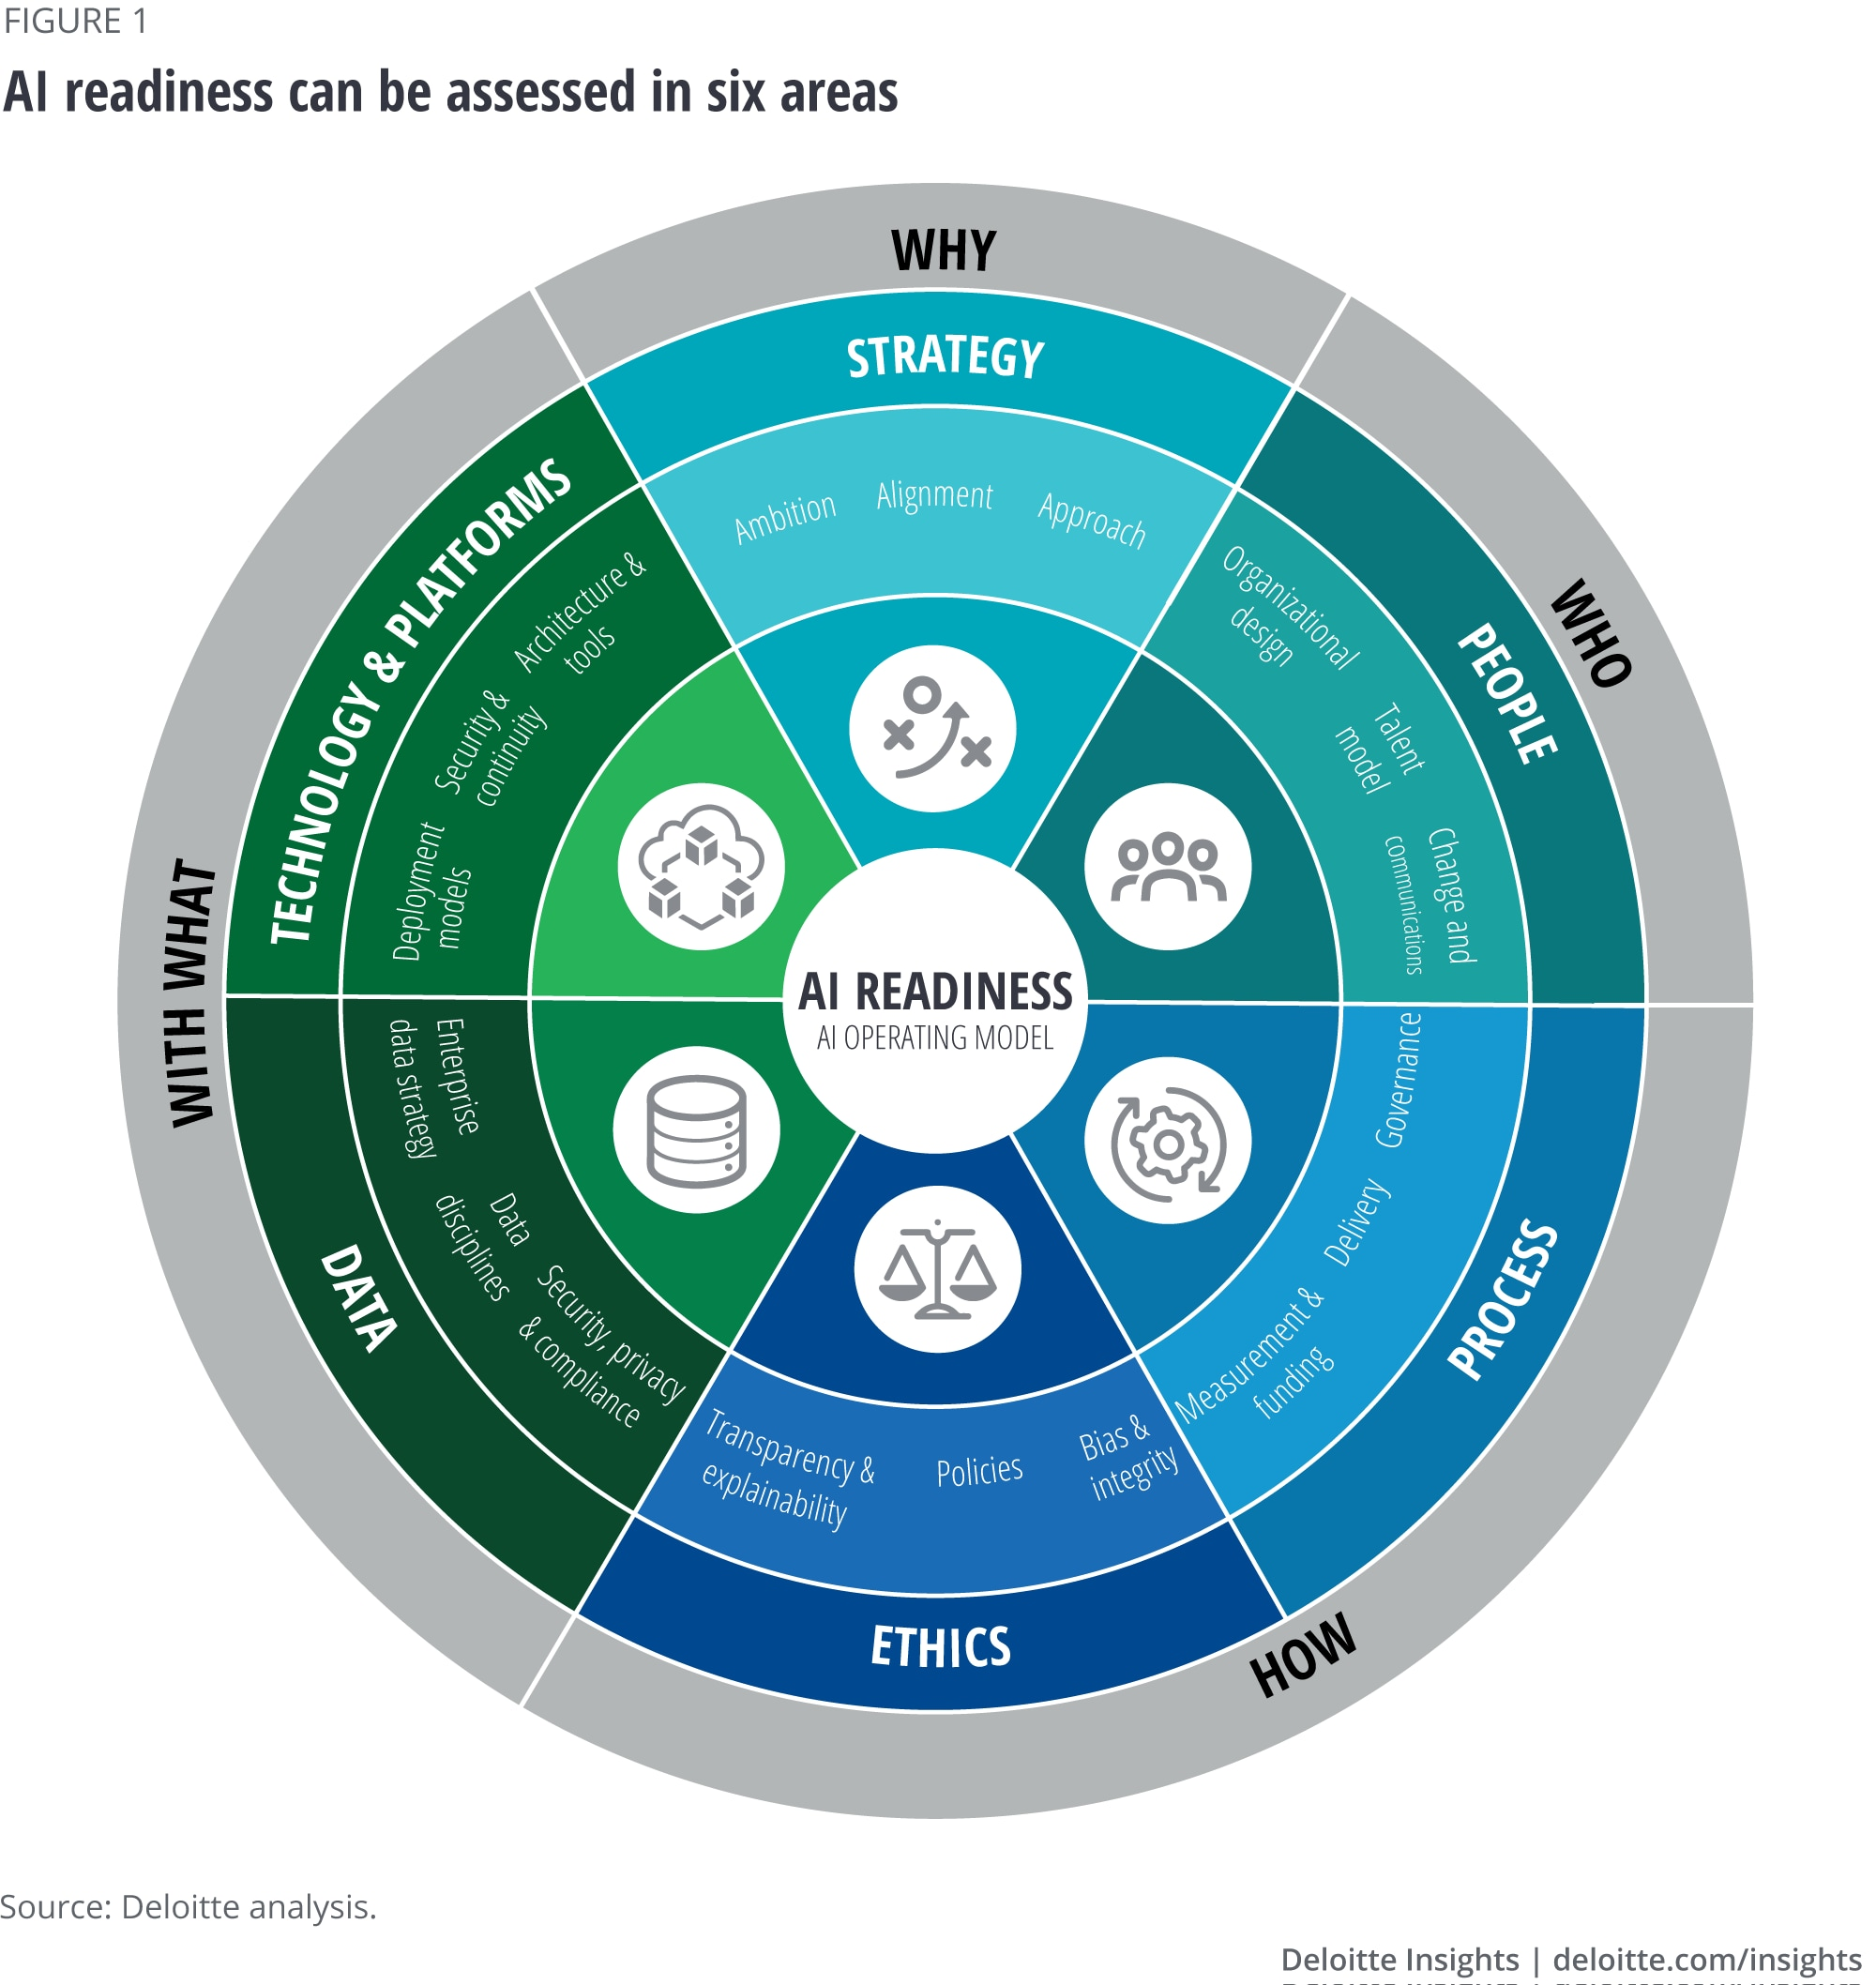 AI readiness can be assessed in six areas